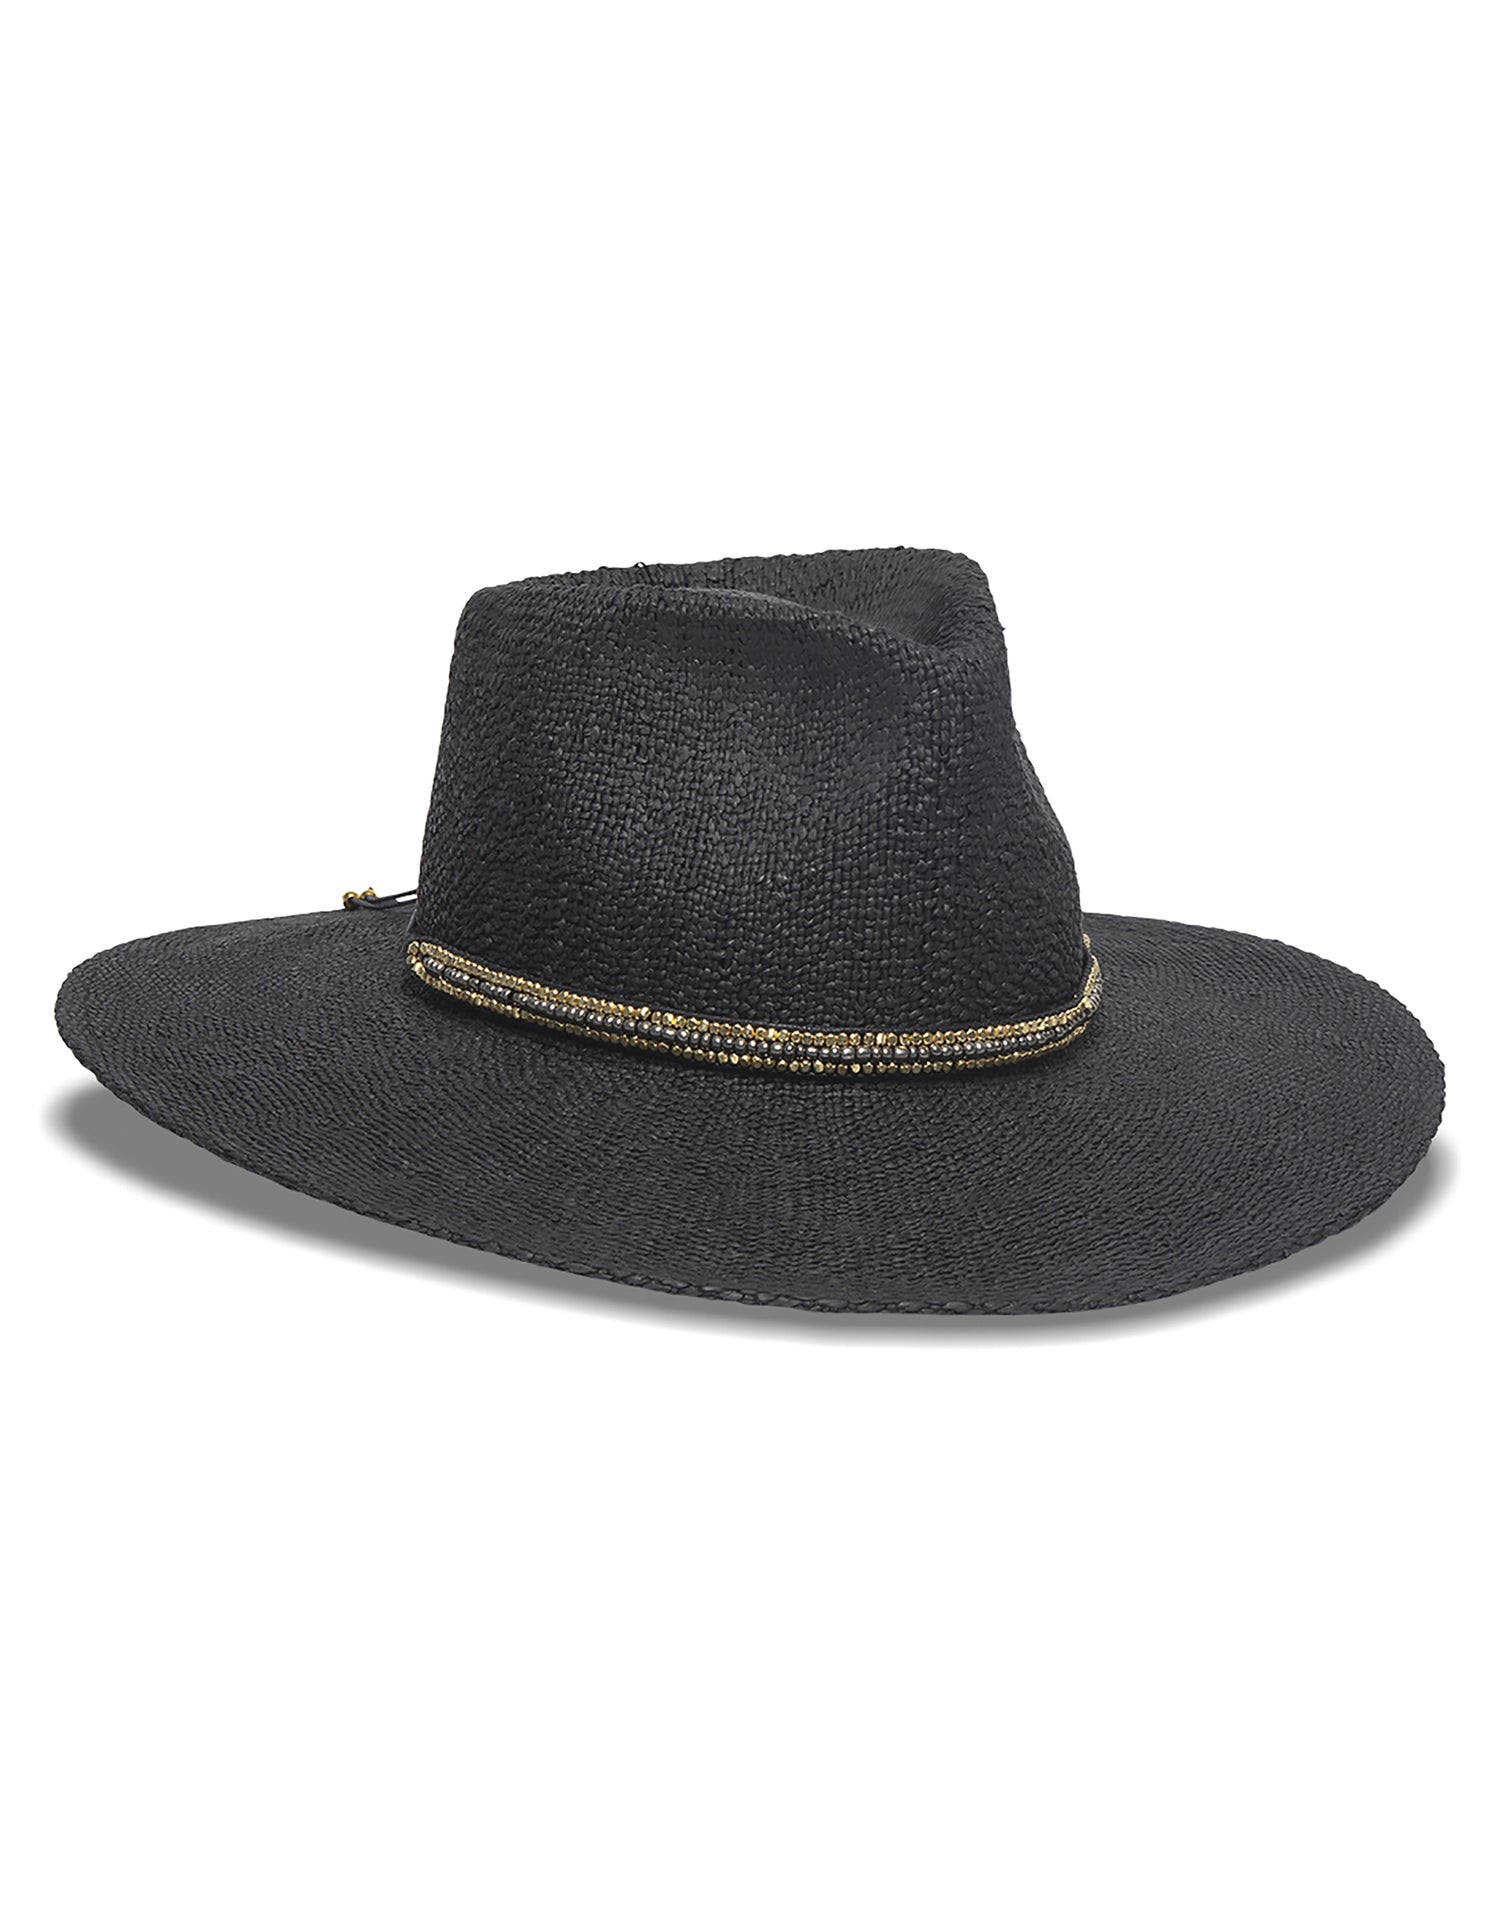 Nikki Beach's Monte Carlo Rancher Hat in Black with Metal Beaded Trim - product view